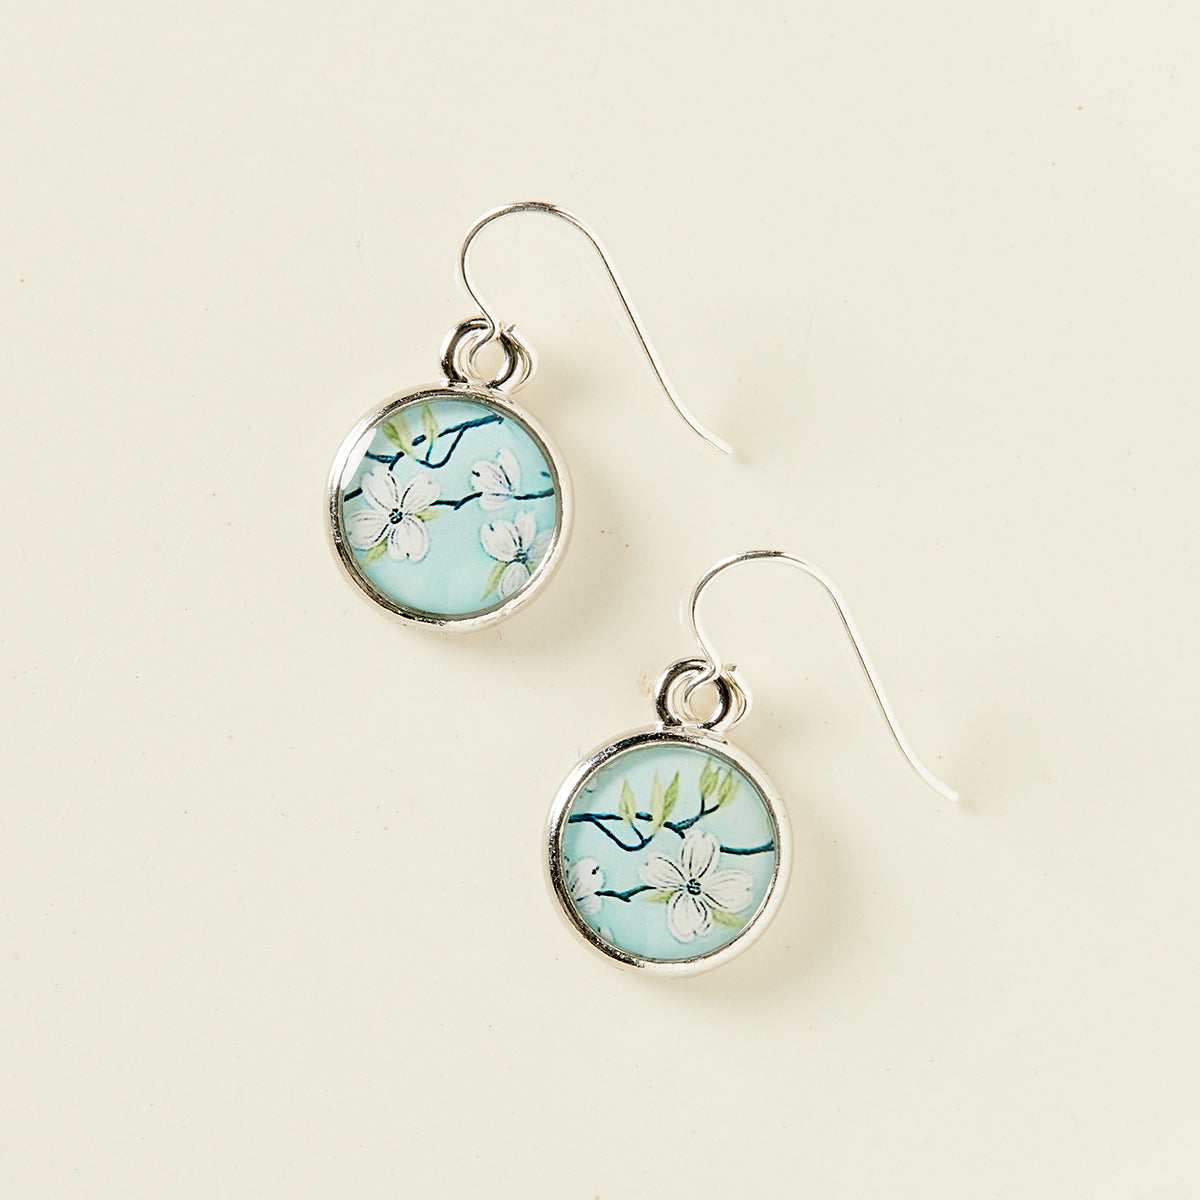 Blooming Dogwood Earrings